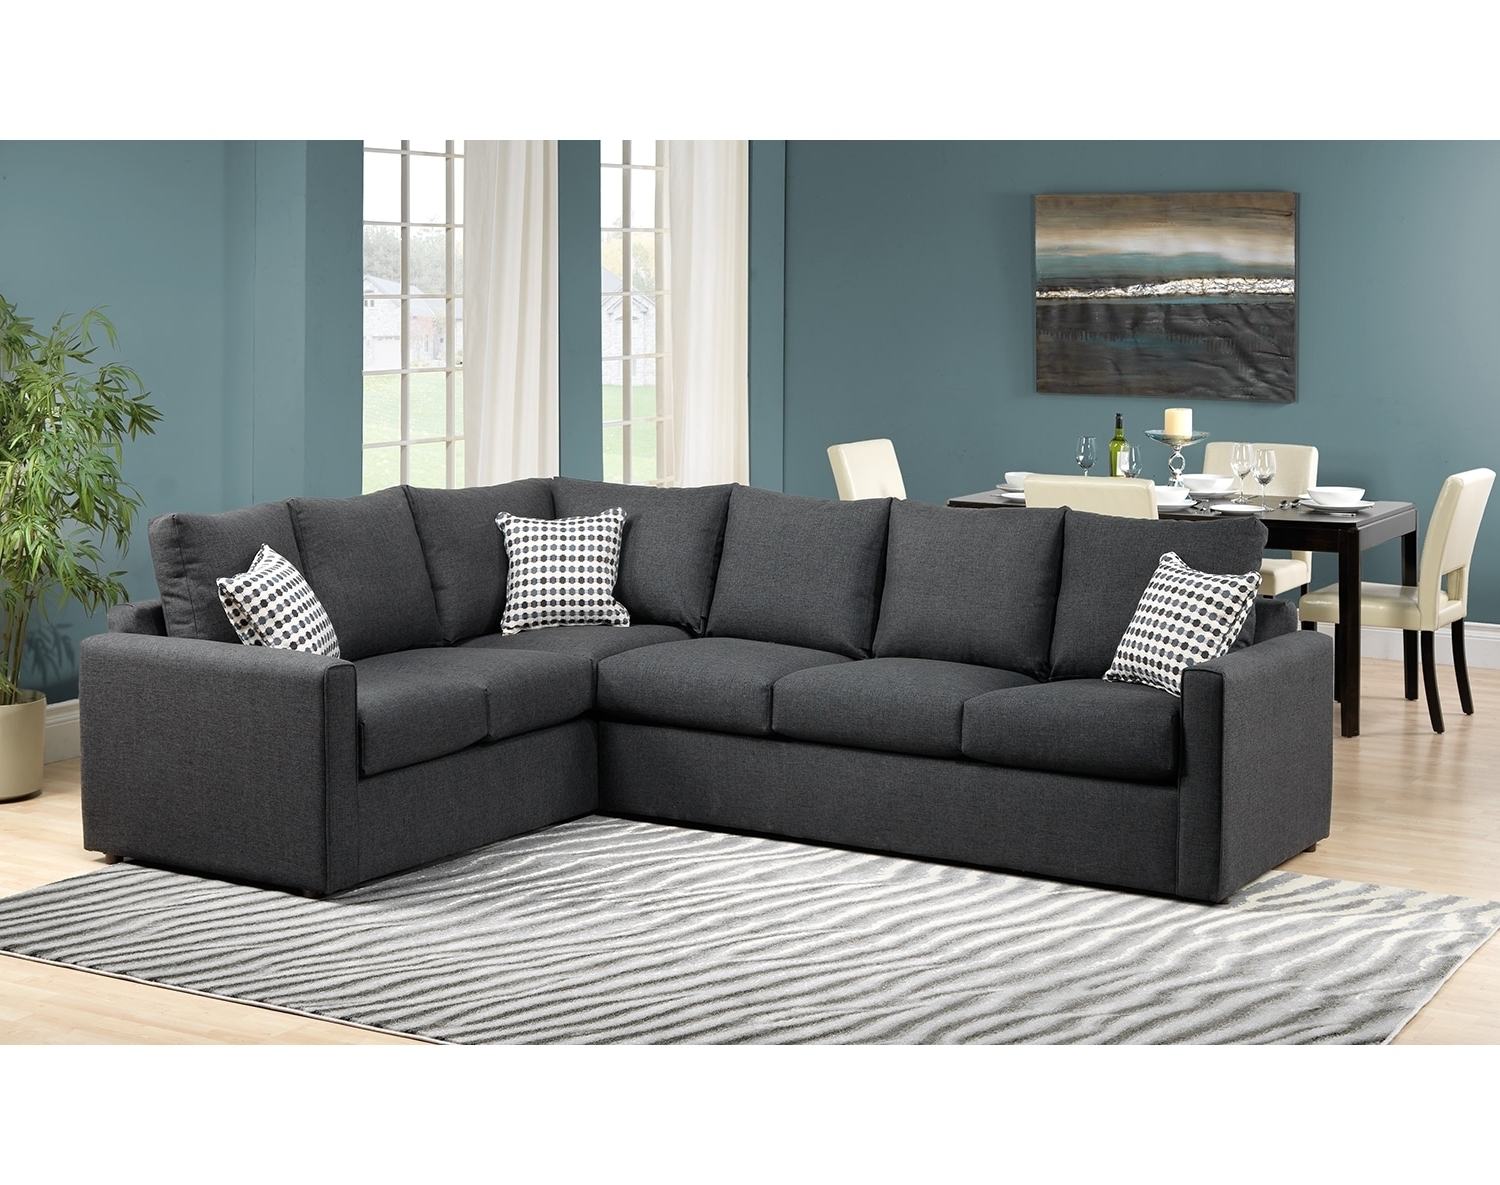 2018 Sectional Sofas At Brampton Regarding Athina 2 Piece Sectional With Left Facing Queen Sofa Bed (View 1 of 20)